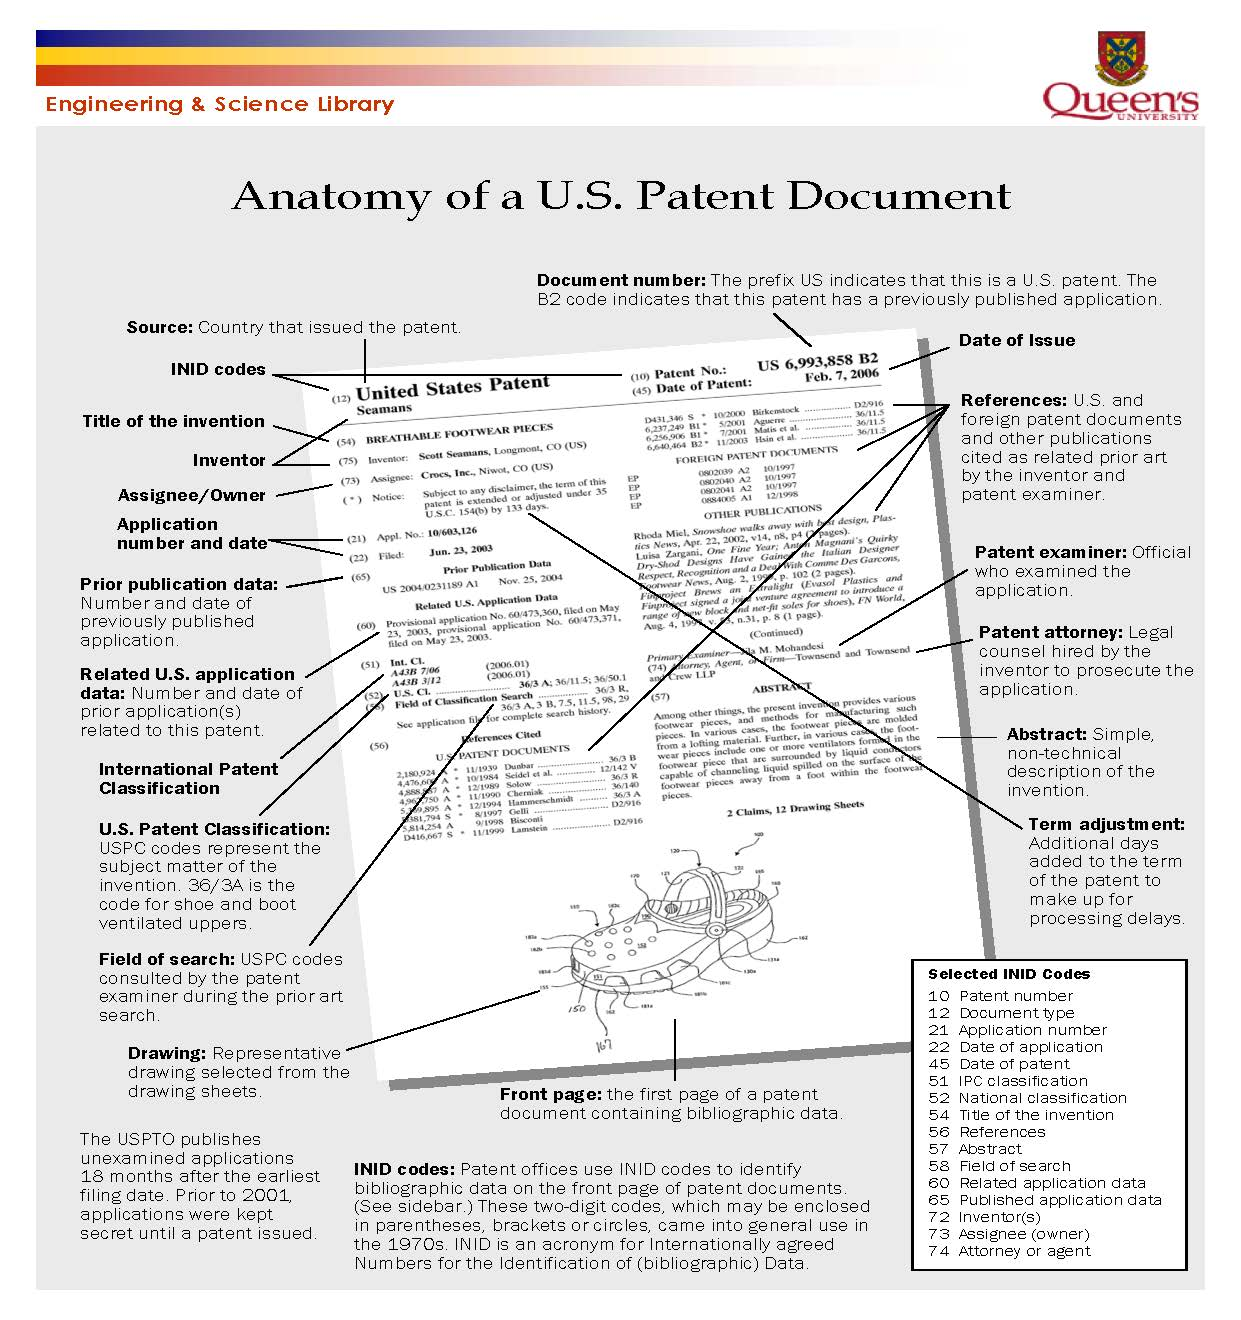 Anatomy of a U.S. Patent page 1